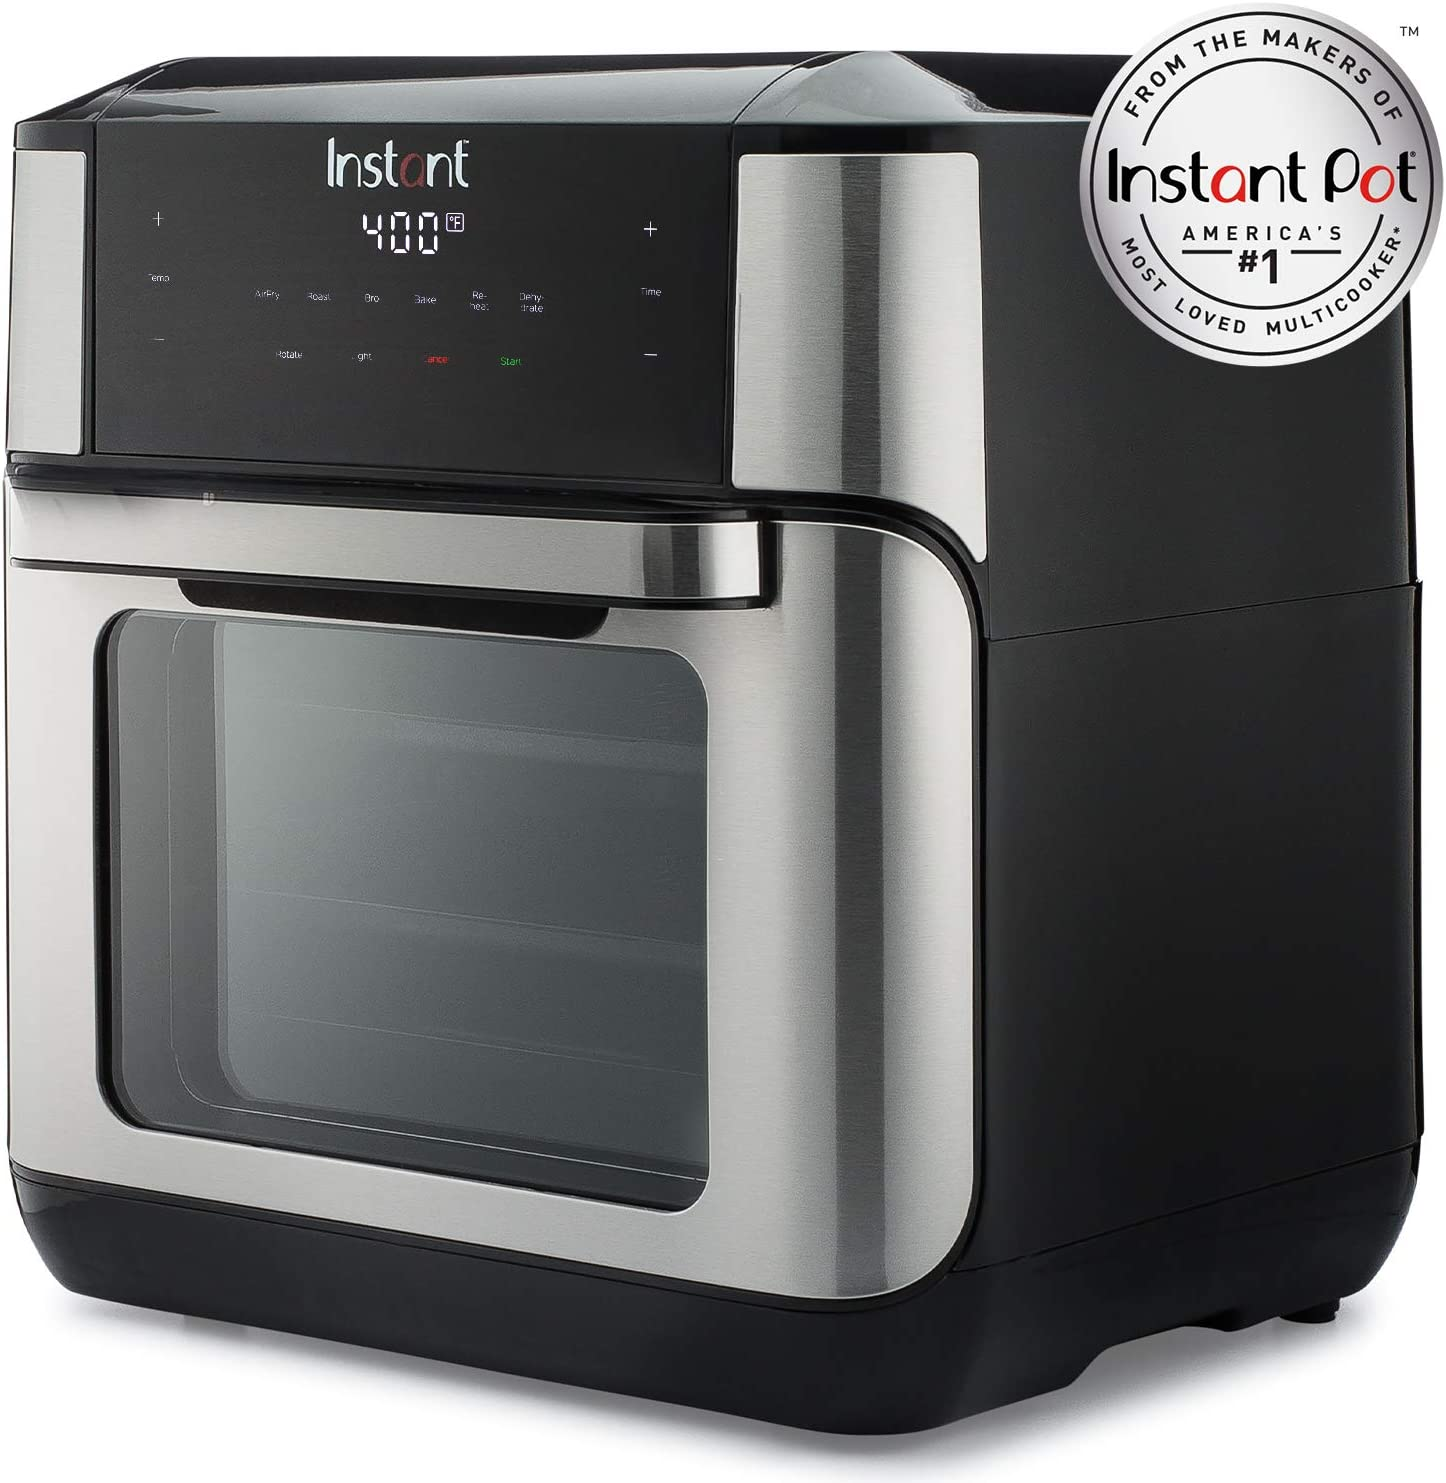 Instant Vortex Plus Air Fryer Oven - View from side